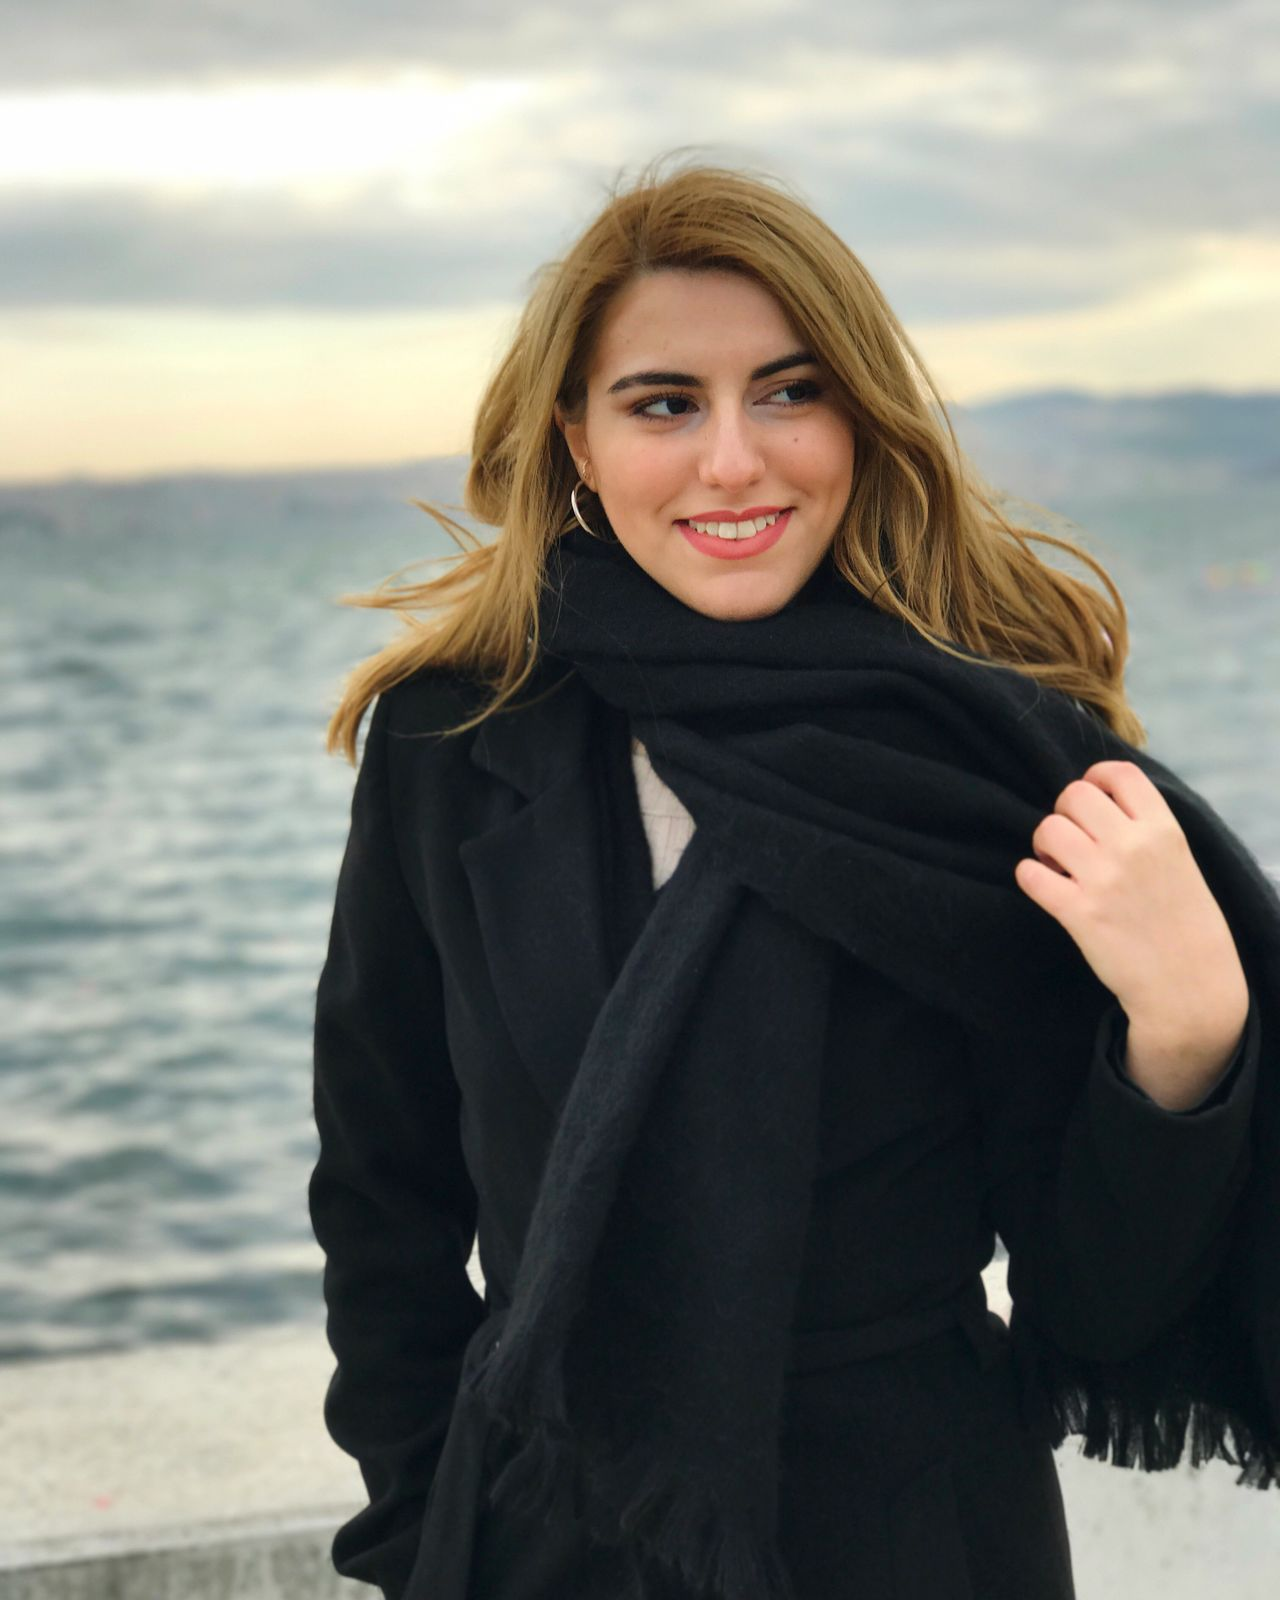 Portrait Sea Smiling Sky One Person Happiness Day Young Women Beauty In Nature Izmir Photography Fashion Fashion&love&beauty Lifestyles Stylish Style Girl Women Black Fashion Photography Fashionable Love City Girl Photography Women